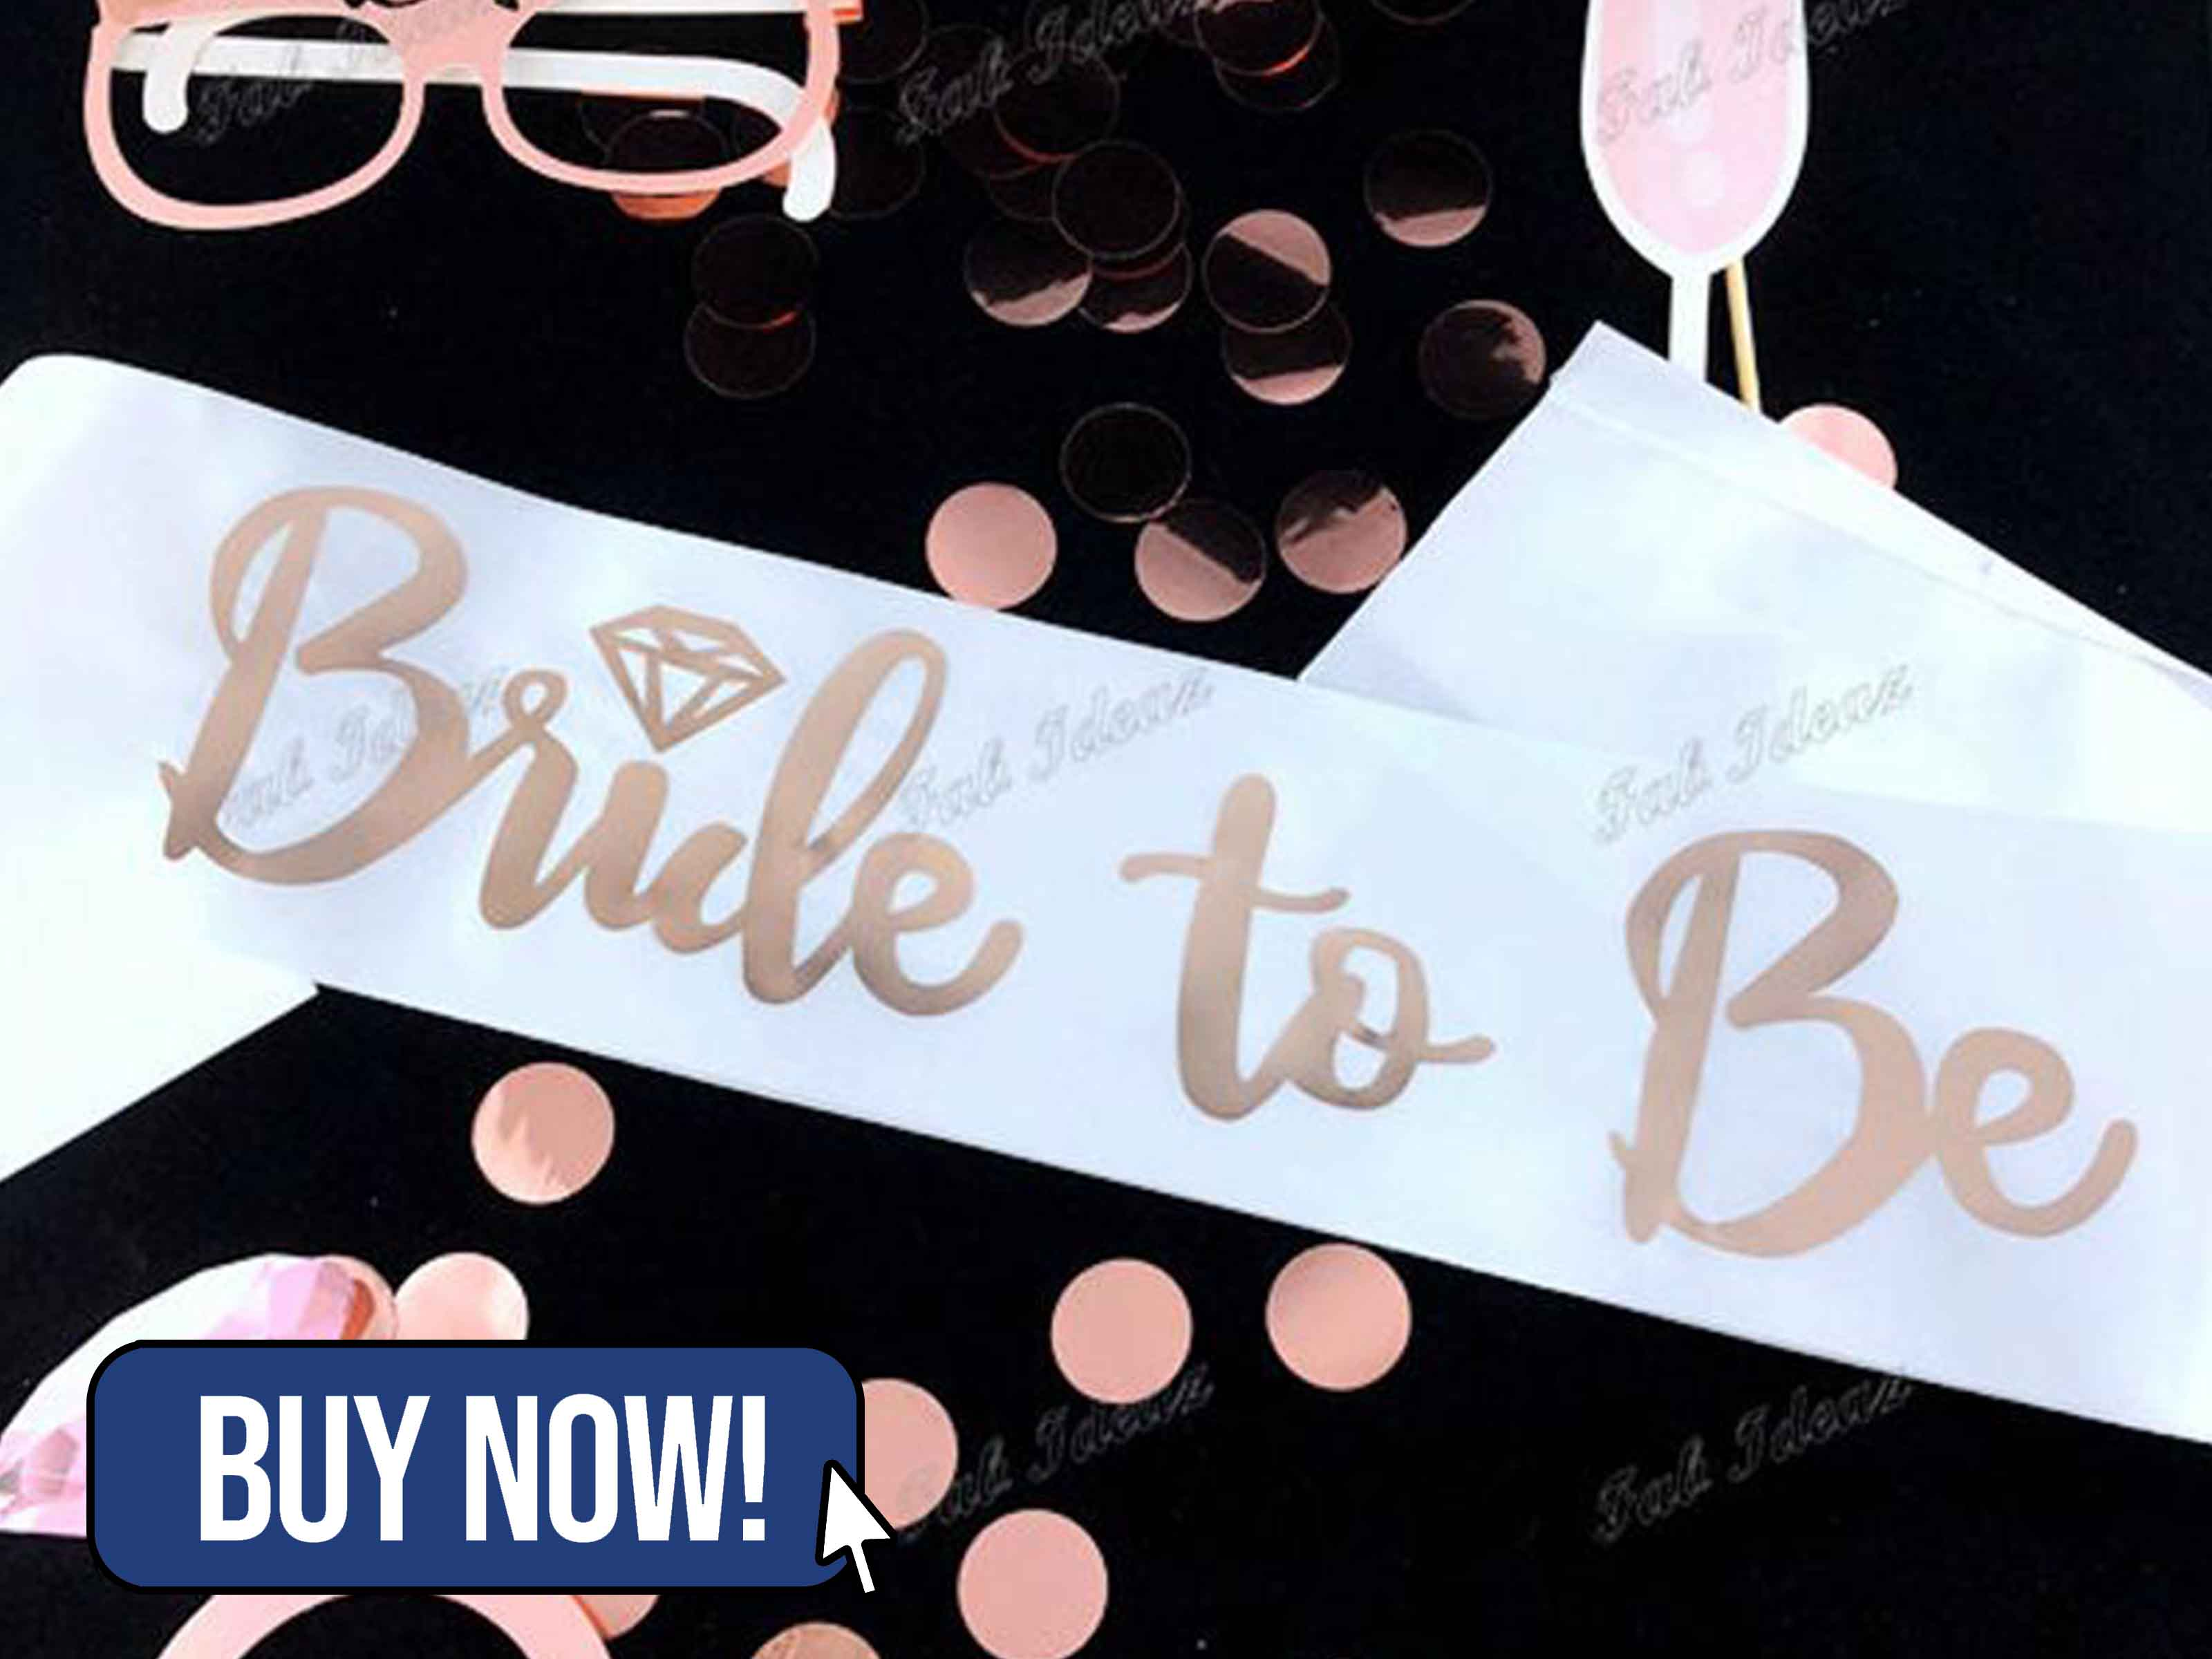 Rose Gold Bride To Be Sash - FabIdeazAu